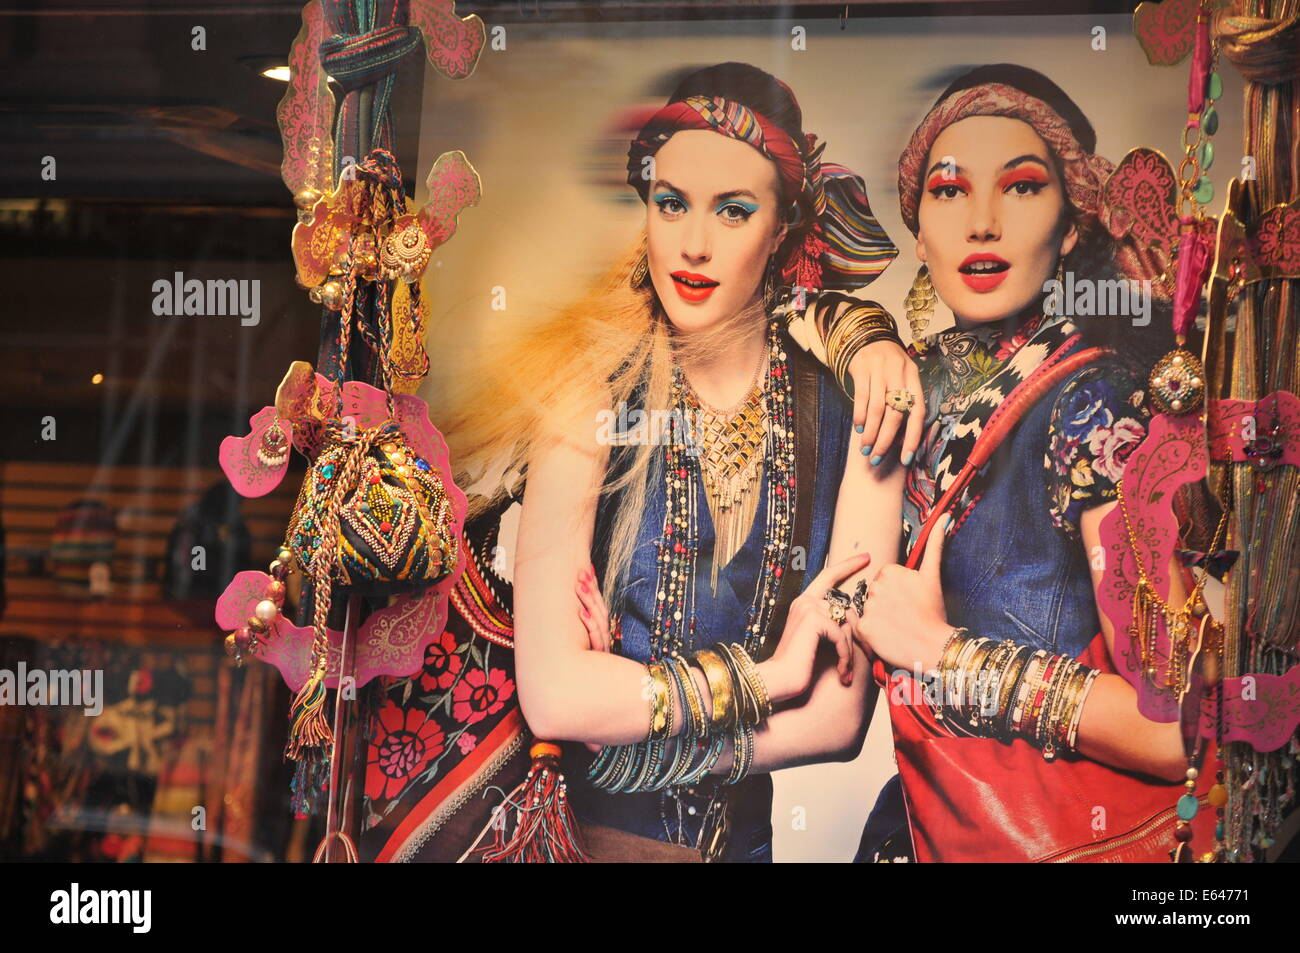 LONDON, UK - AUGUST 23, 2010: Vintage accessories on display in window shop in central London (illustrative editorial) - Stock Image